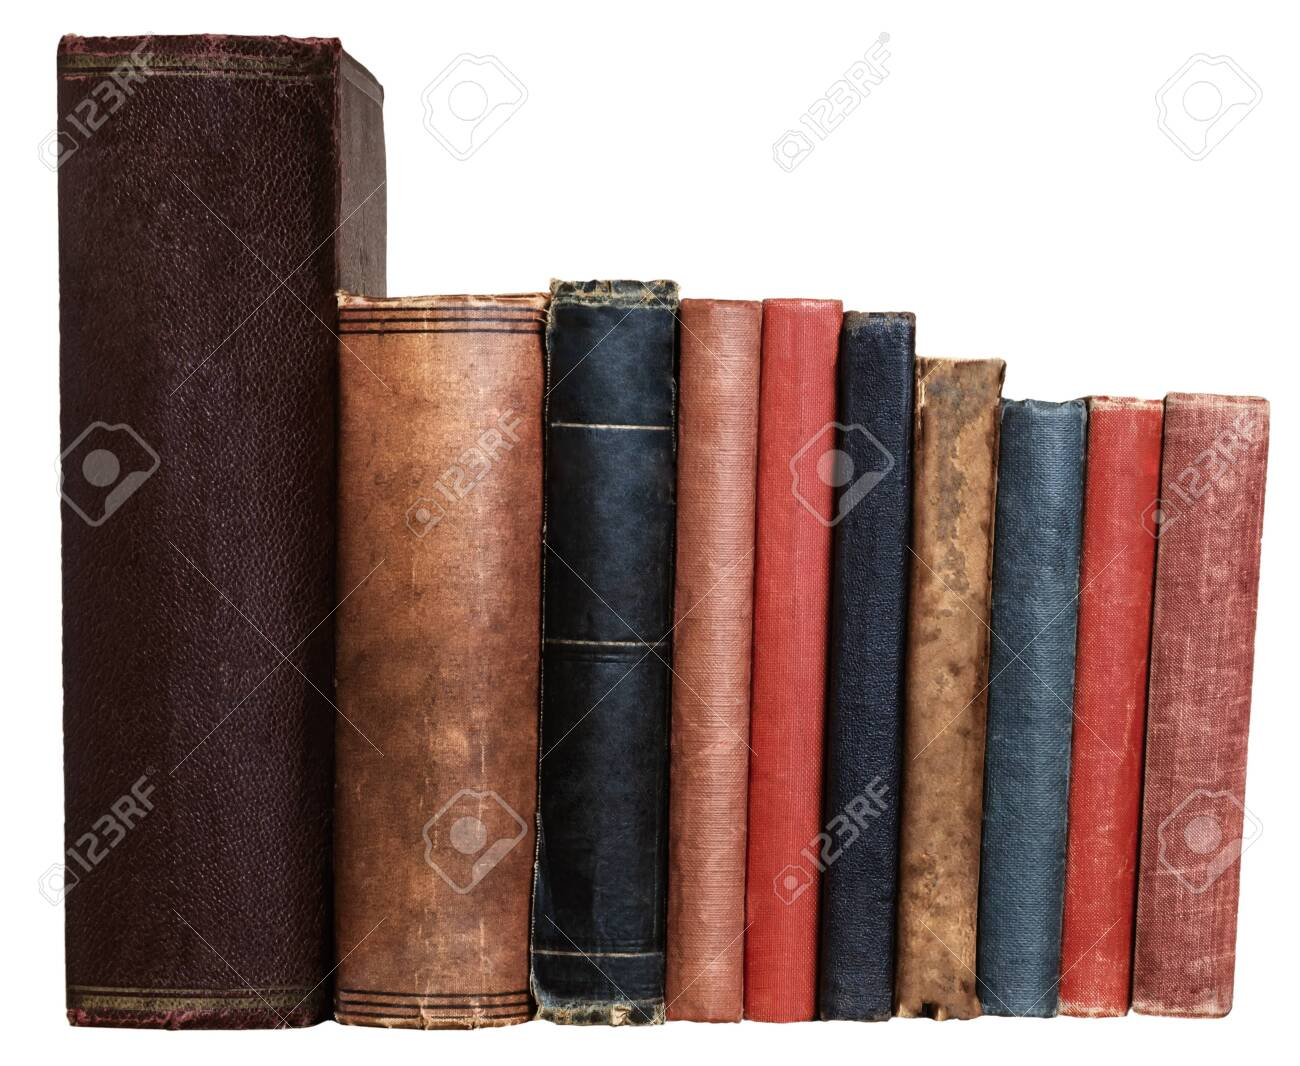 A row of old books in different colours and sizes, isolated on a white background. Blank spines facing viewer at eye level. - 139469578